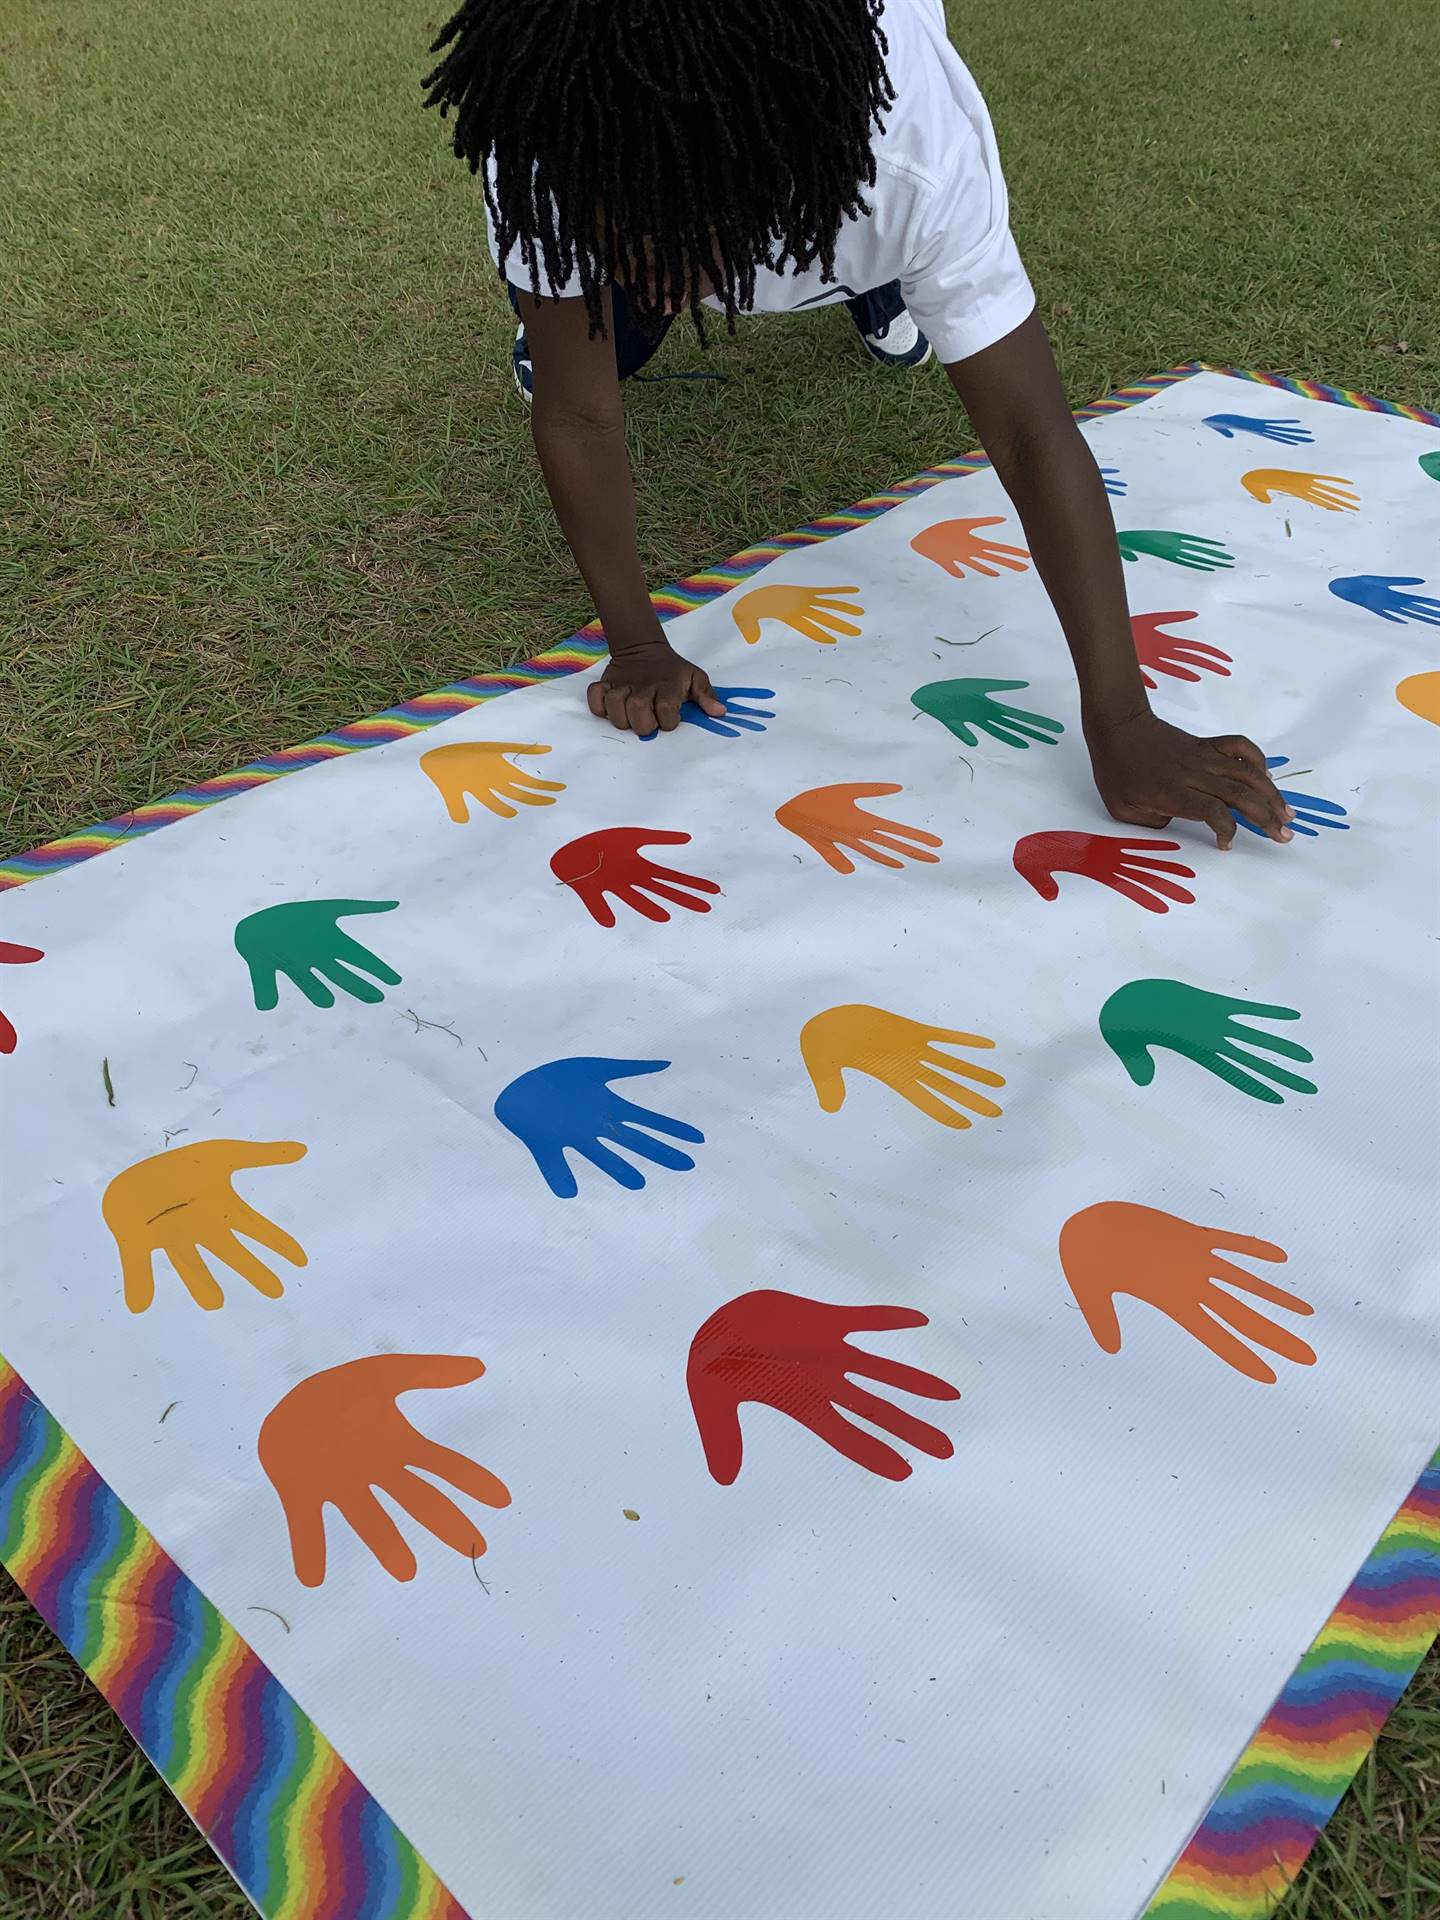 Student playing twister